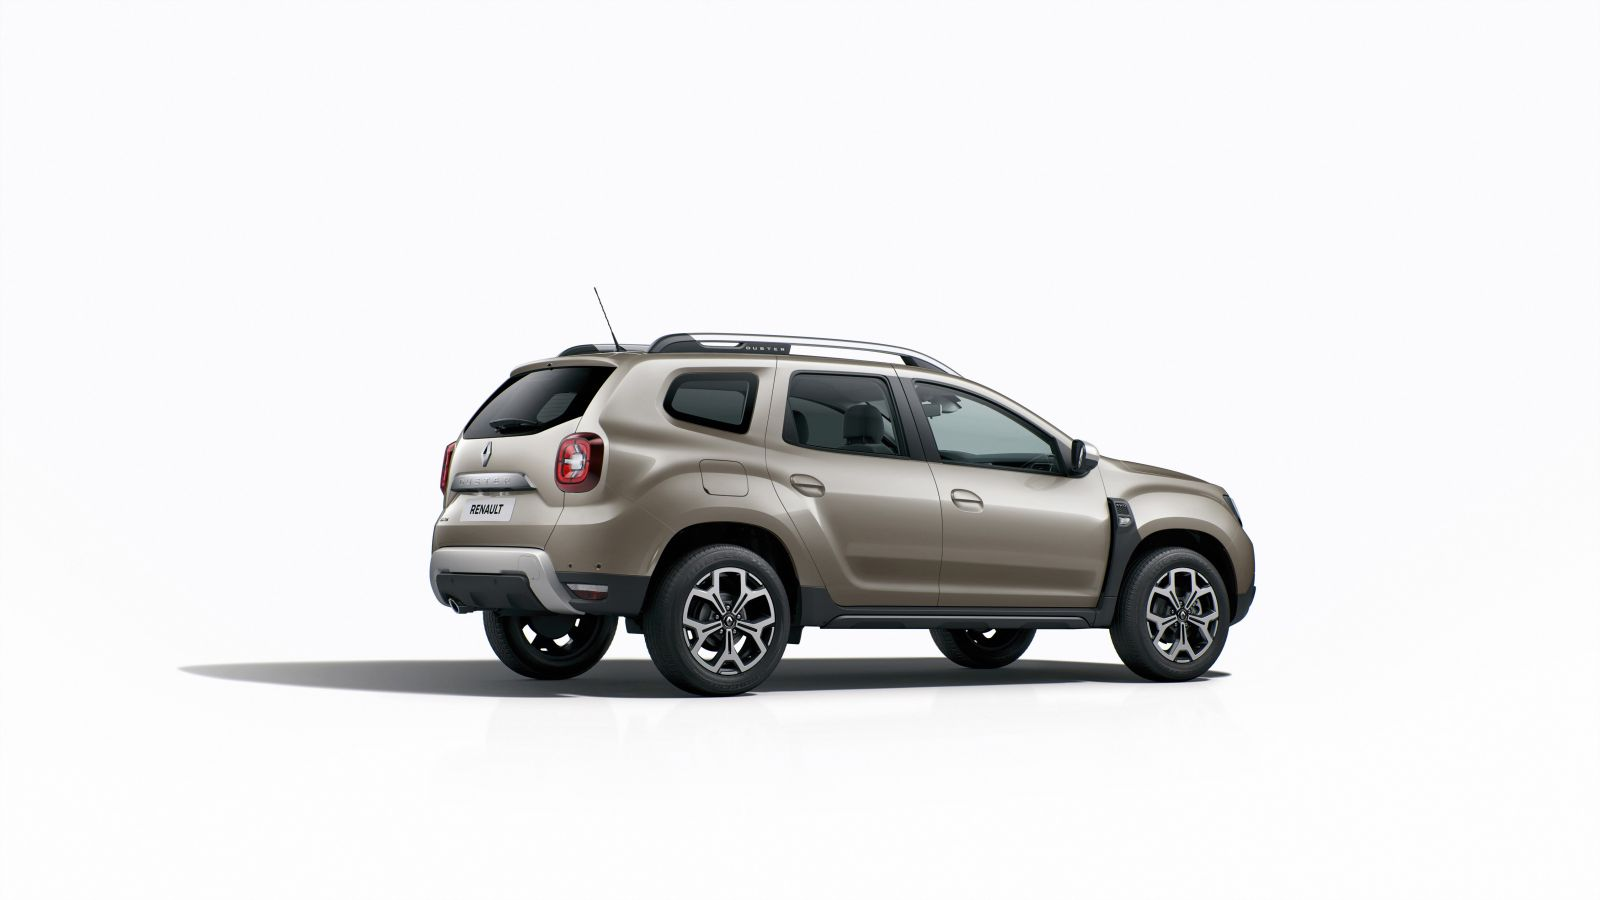 india bound 2018 renault duster makes global debut images. Black Bedroom Furniture Sets. Home Design Ideas